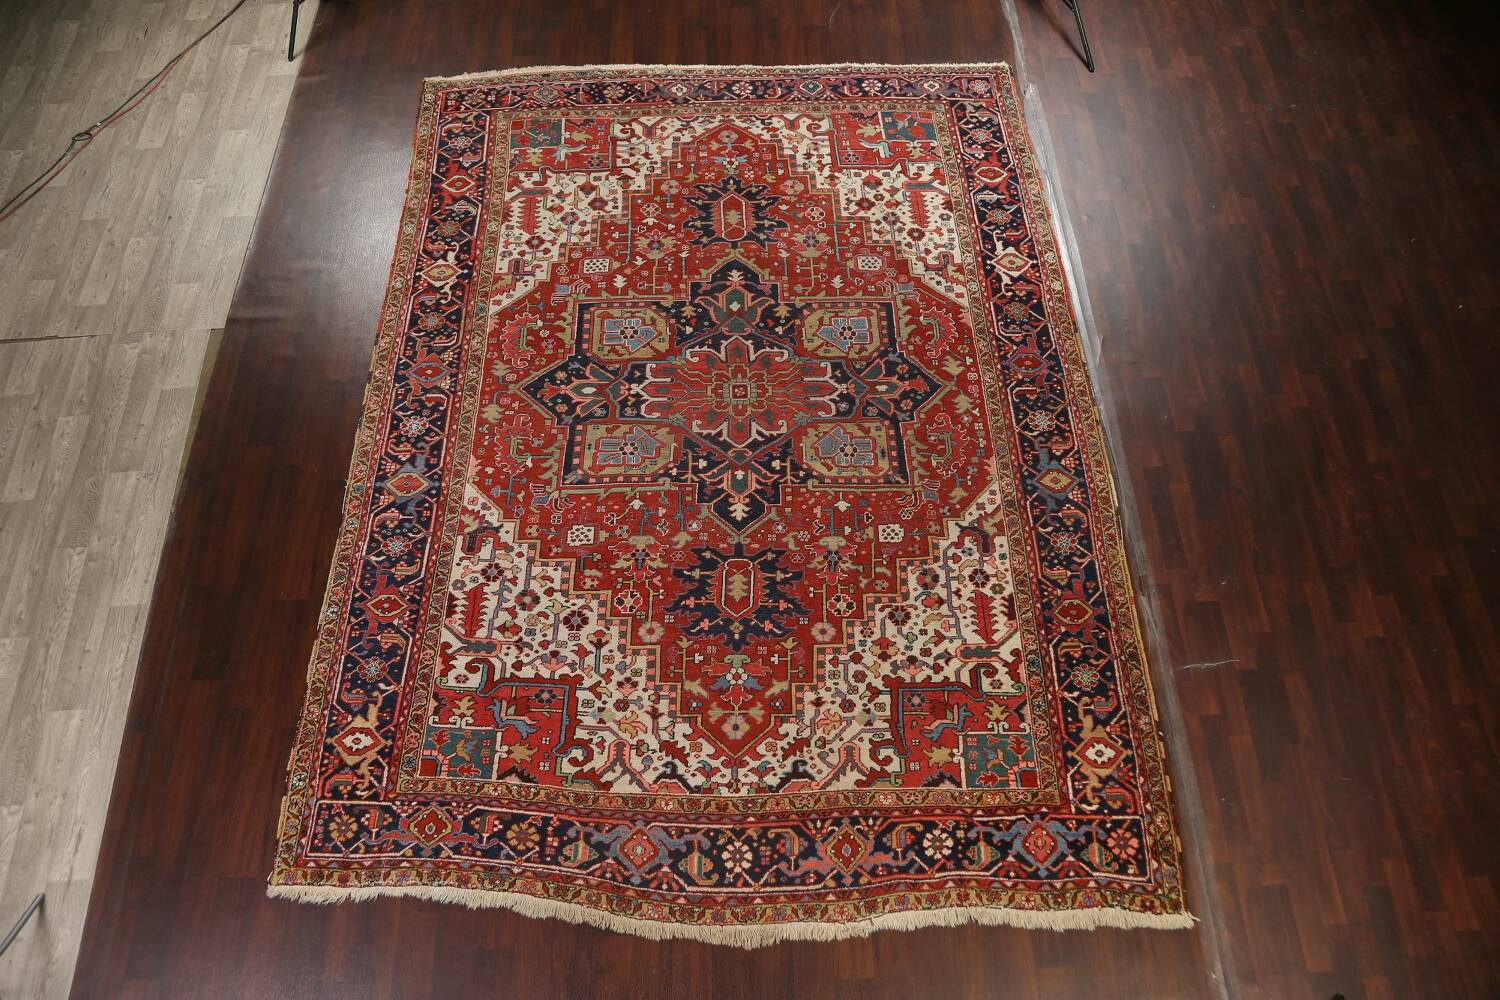 Pre-1900 Antique Vegetable Dye Heriz Serapi Persian Area Rug 10x13 image 19